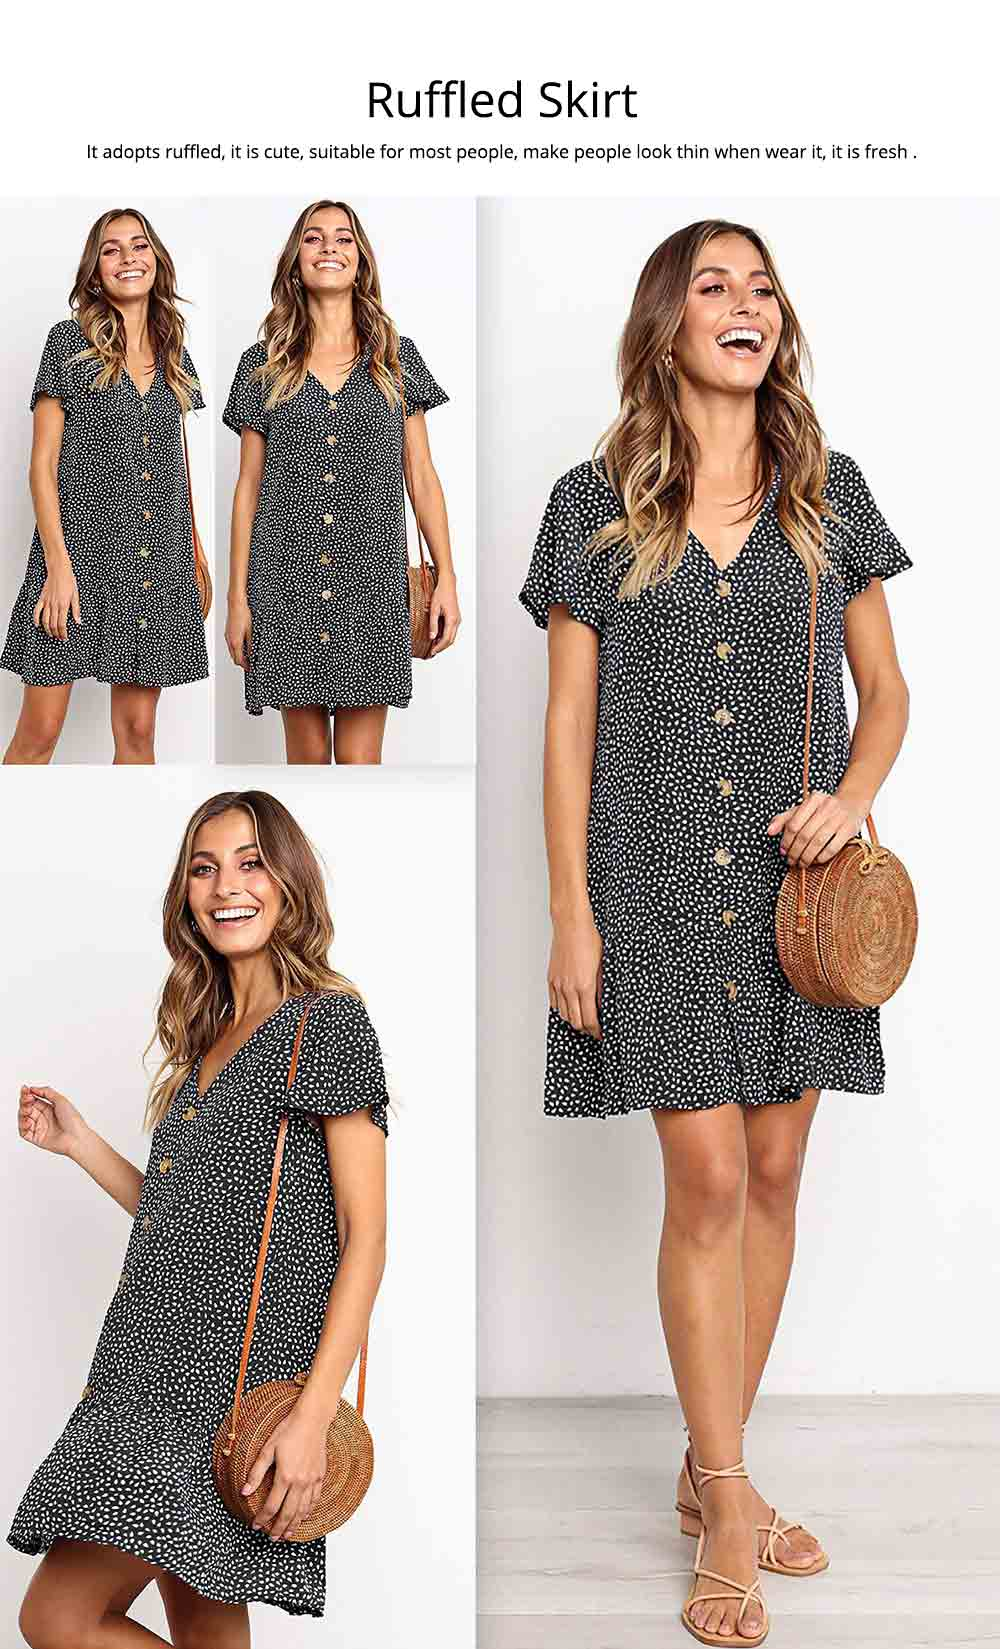 Summer Dot Print Dress Fashion V Neck Button Chiffon Casual Short Sleeve Women Sundress Mini Party Ladies Loose Ruffled Skirt 4